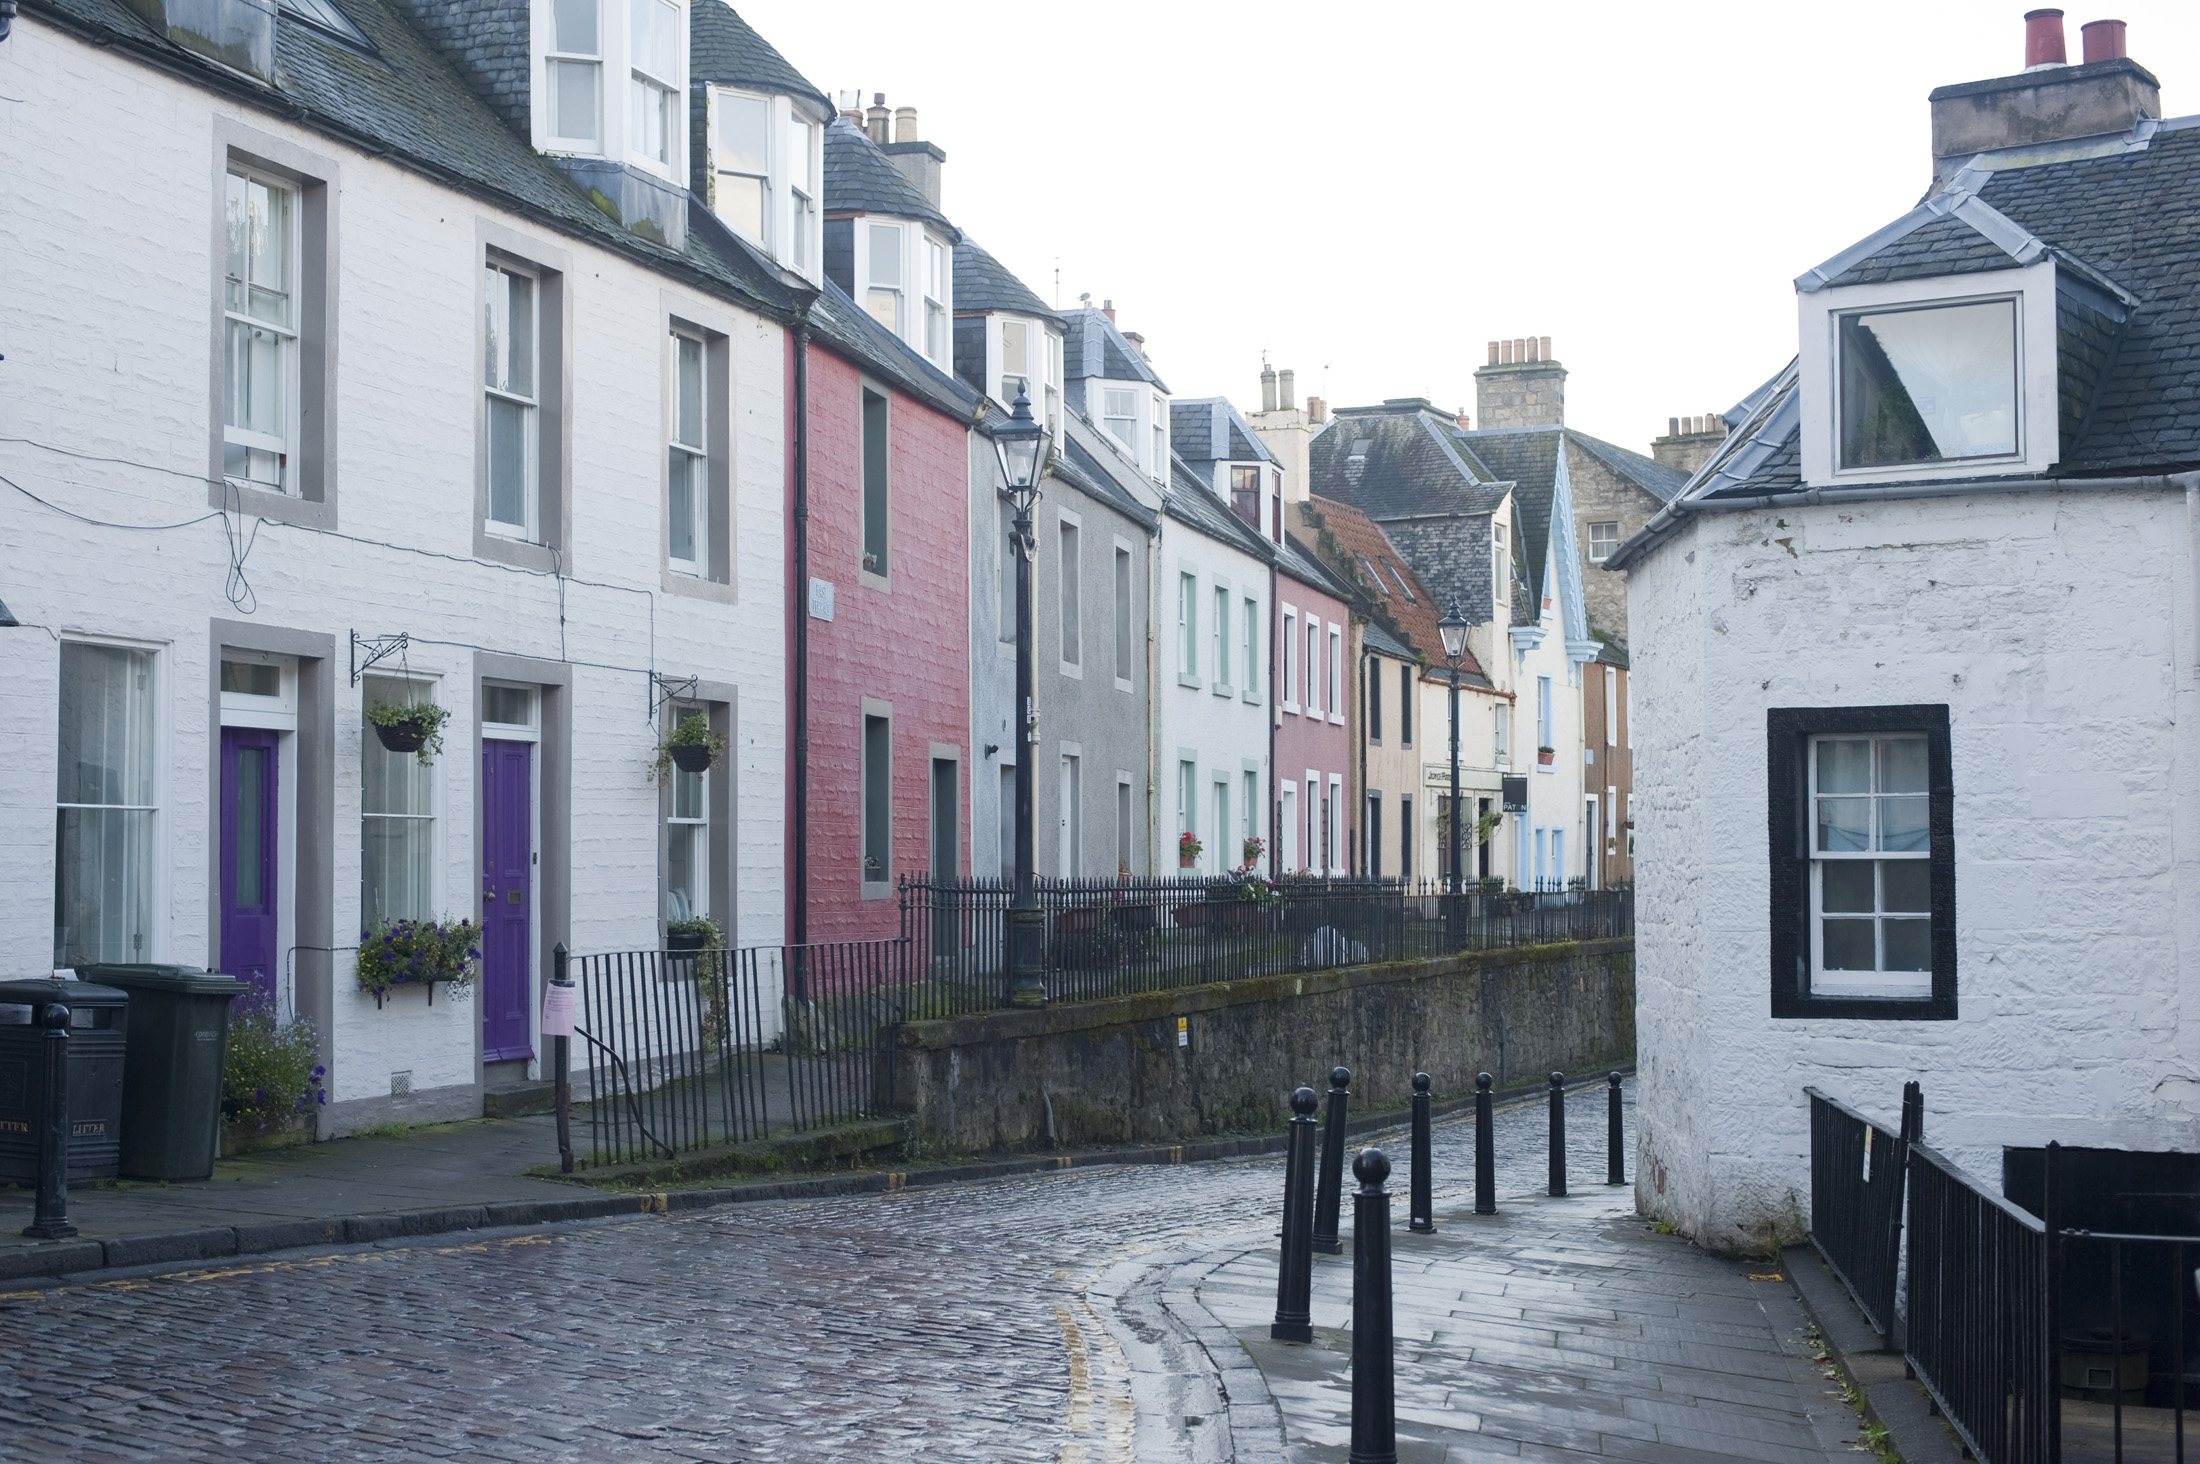 small terraced houses and coble stone streets in queensferry, scotland